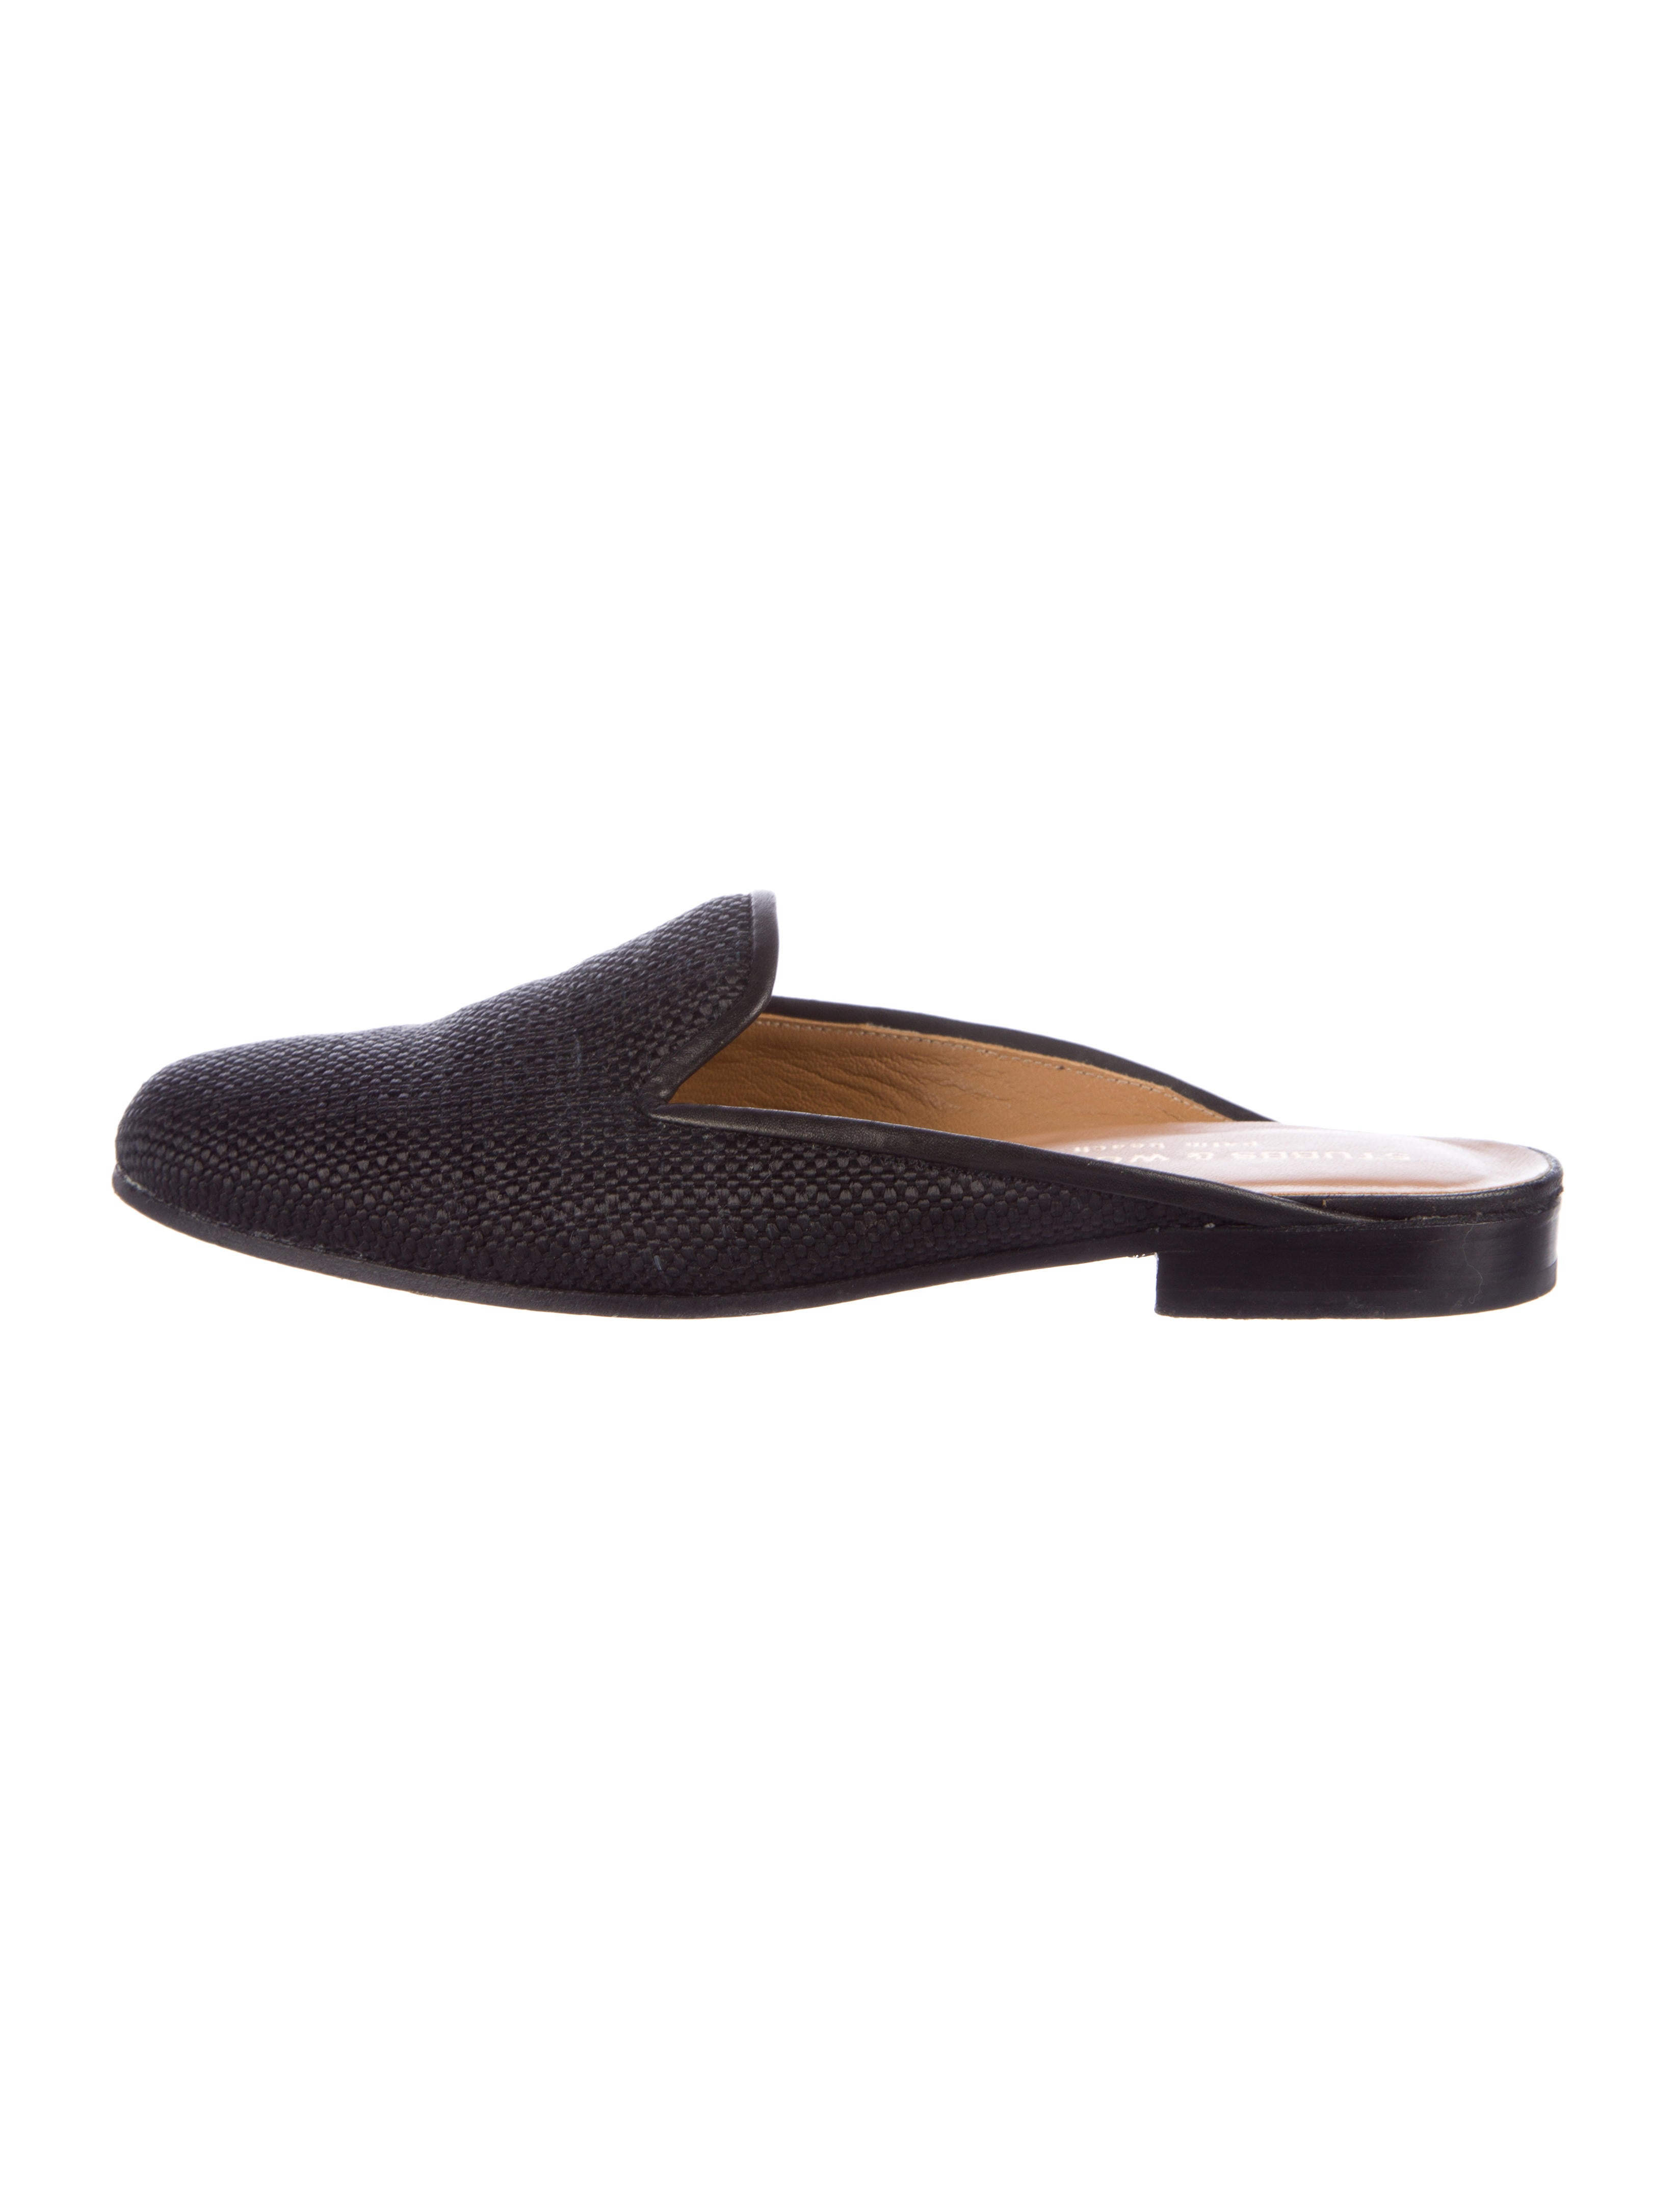 Stubbs & Wootton Woven Round-Toe Mules outlet looking for outlet high quality cheap sale newest from china low shipping fee discount eastbay ifRcQIv0I